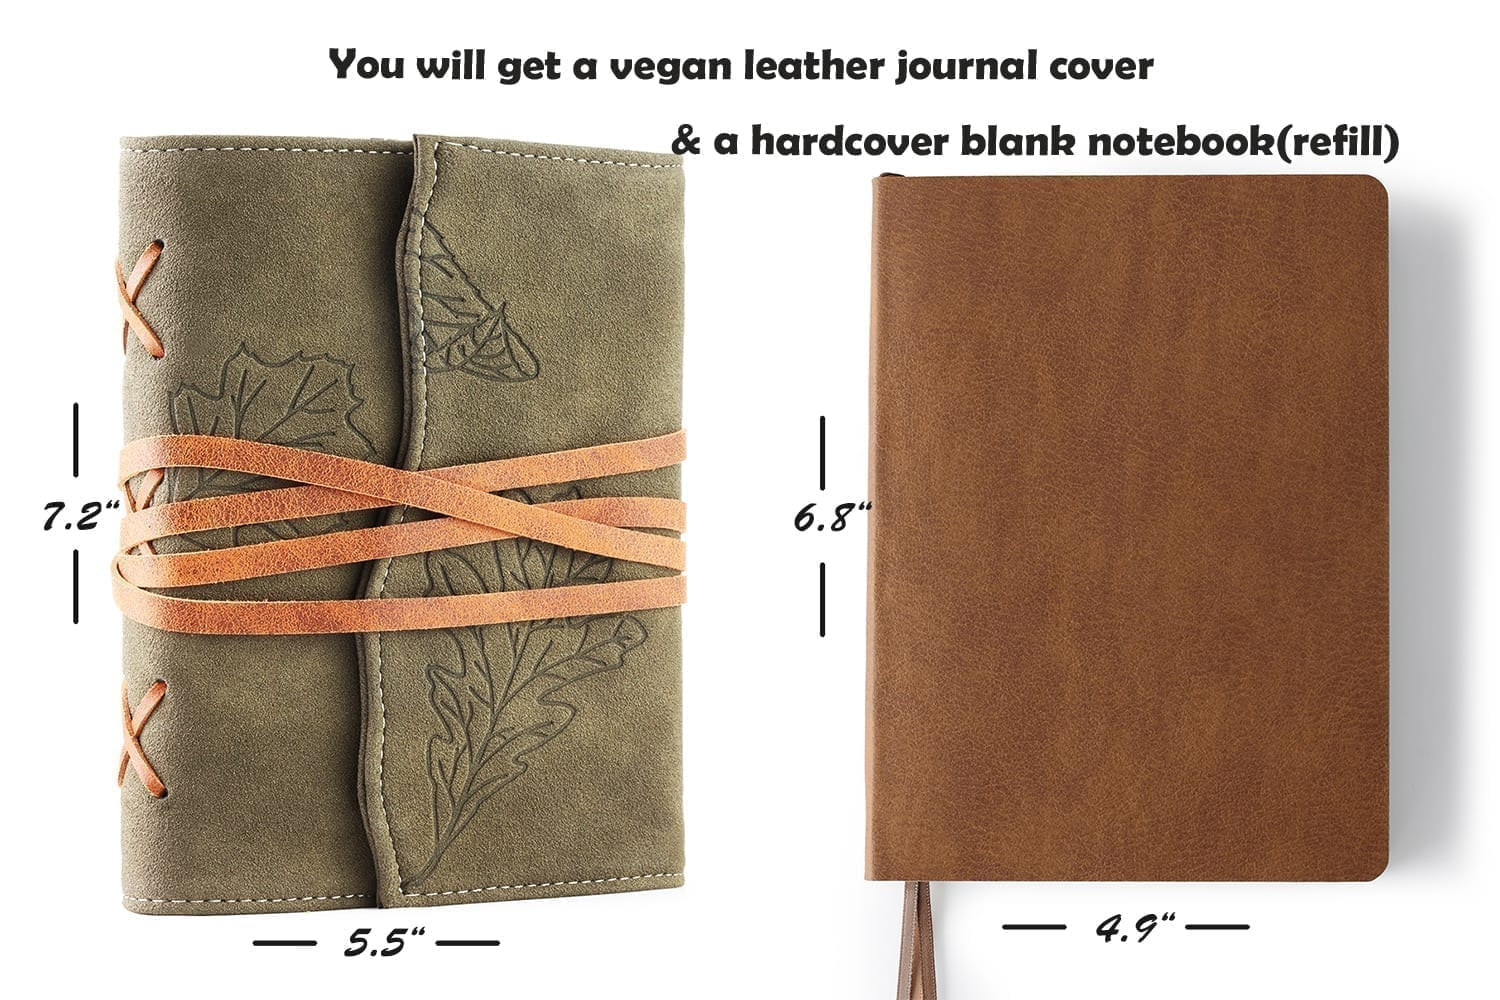 vintage leather journal with soft faux leather cover-green oak leaves embossed